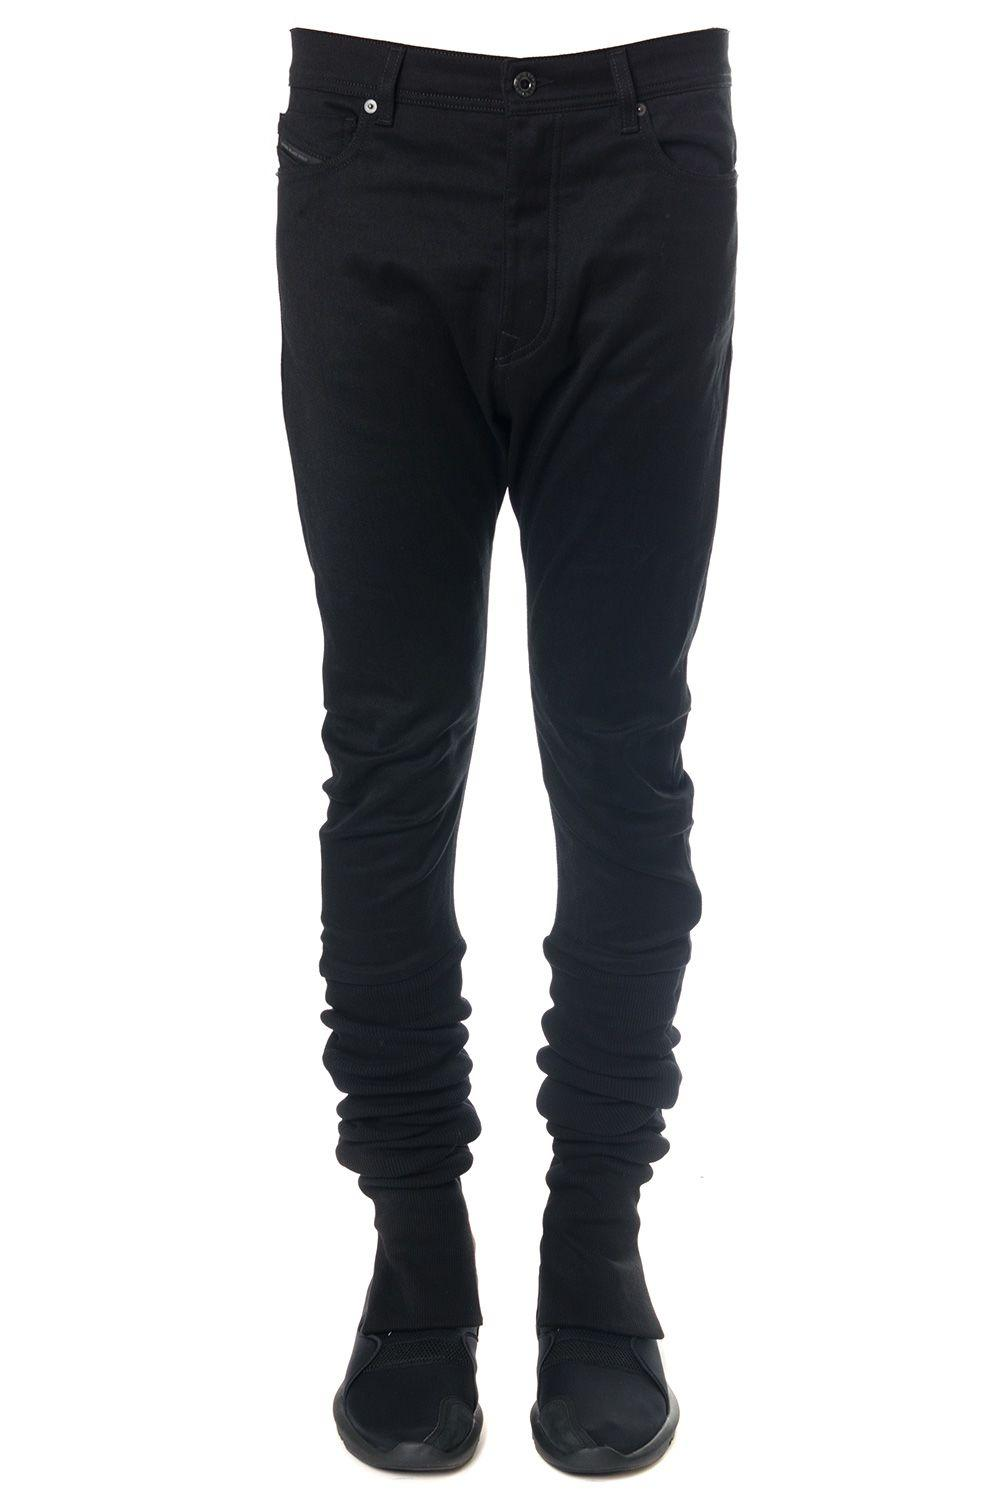 Diesel Black Gold Black Cotton Pants With Sides In Nylon